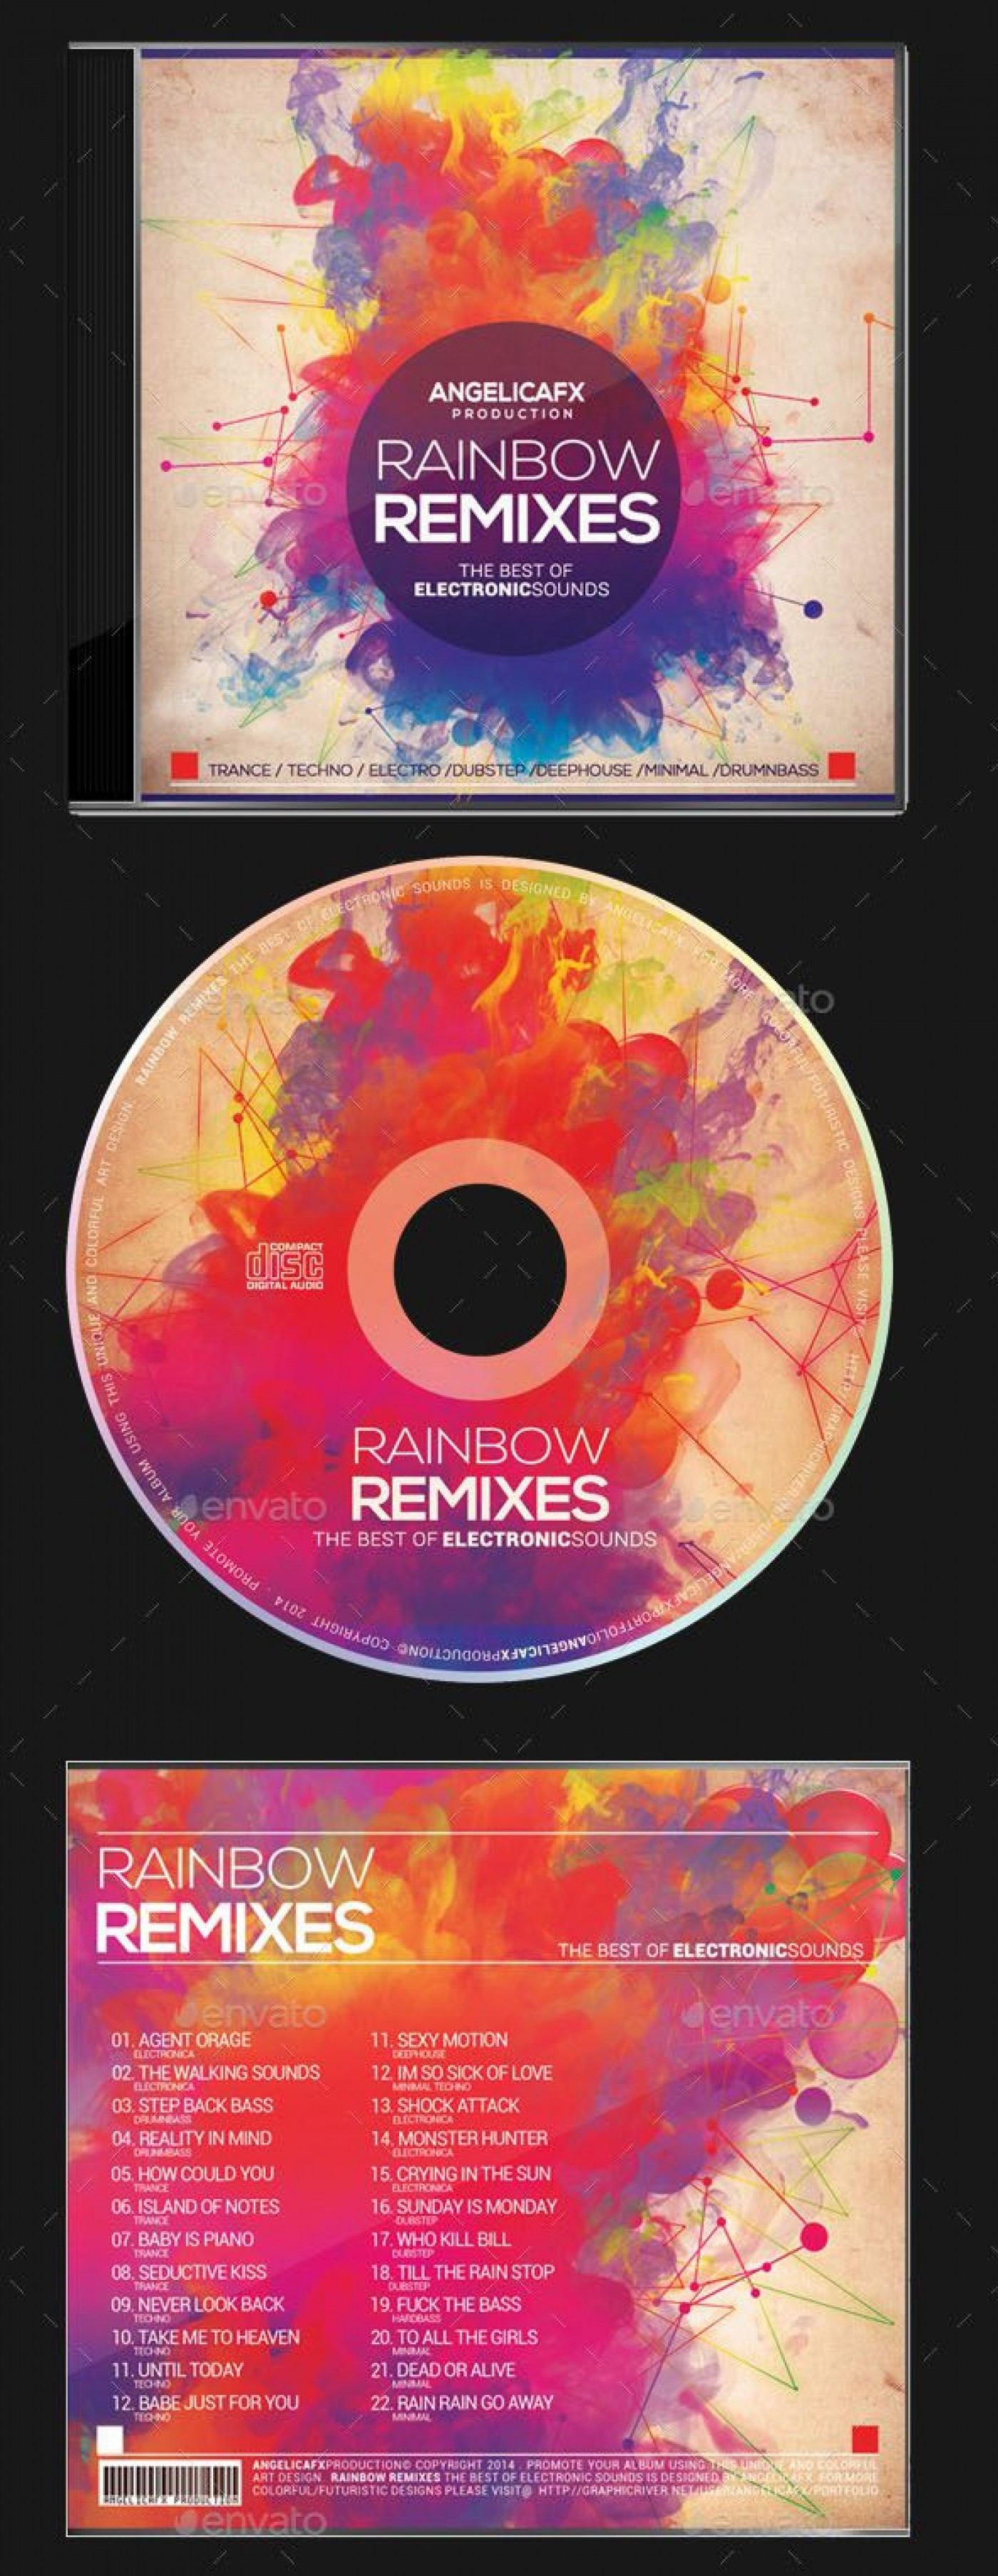 002 Unforgettable Free Cd Cover Design Template Photoshop Inspiration  Label Psd Download1400